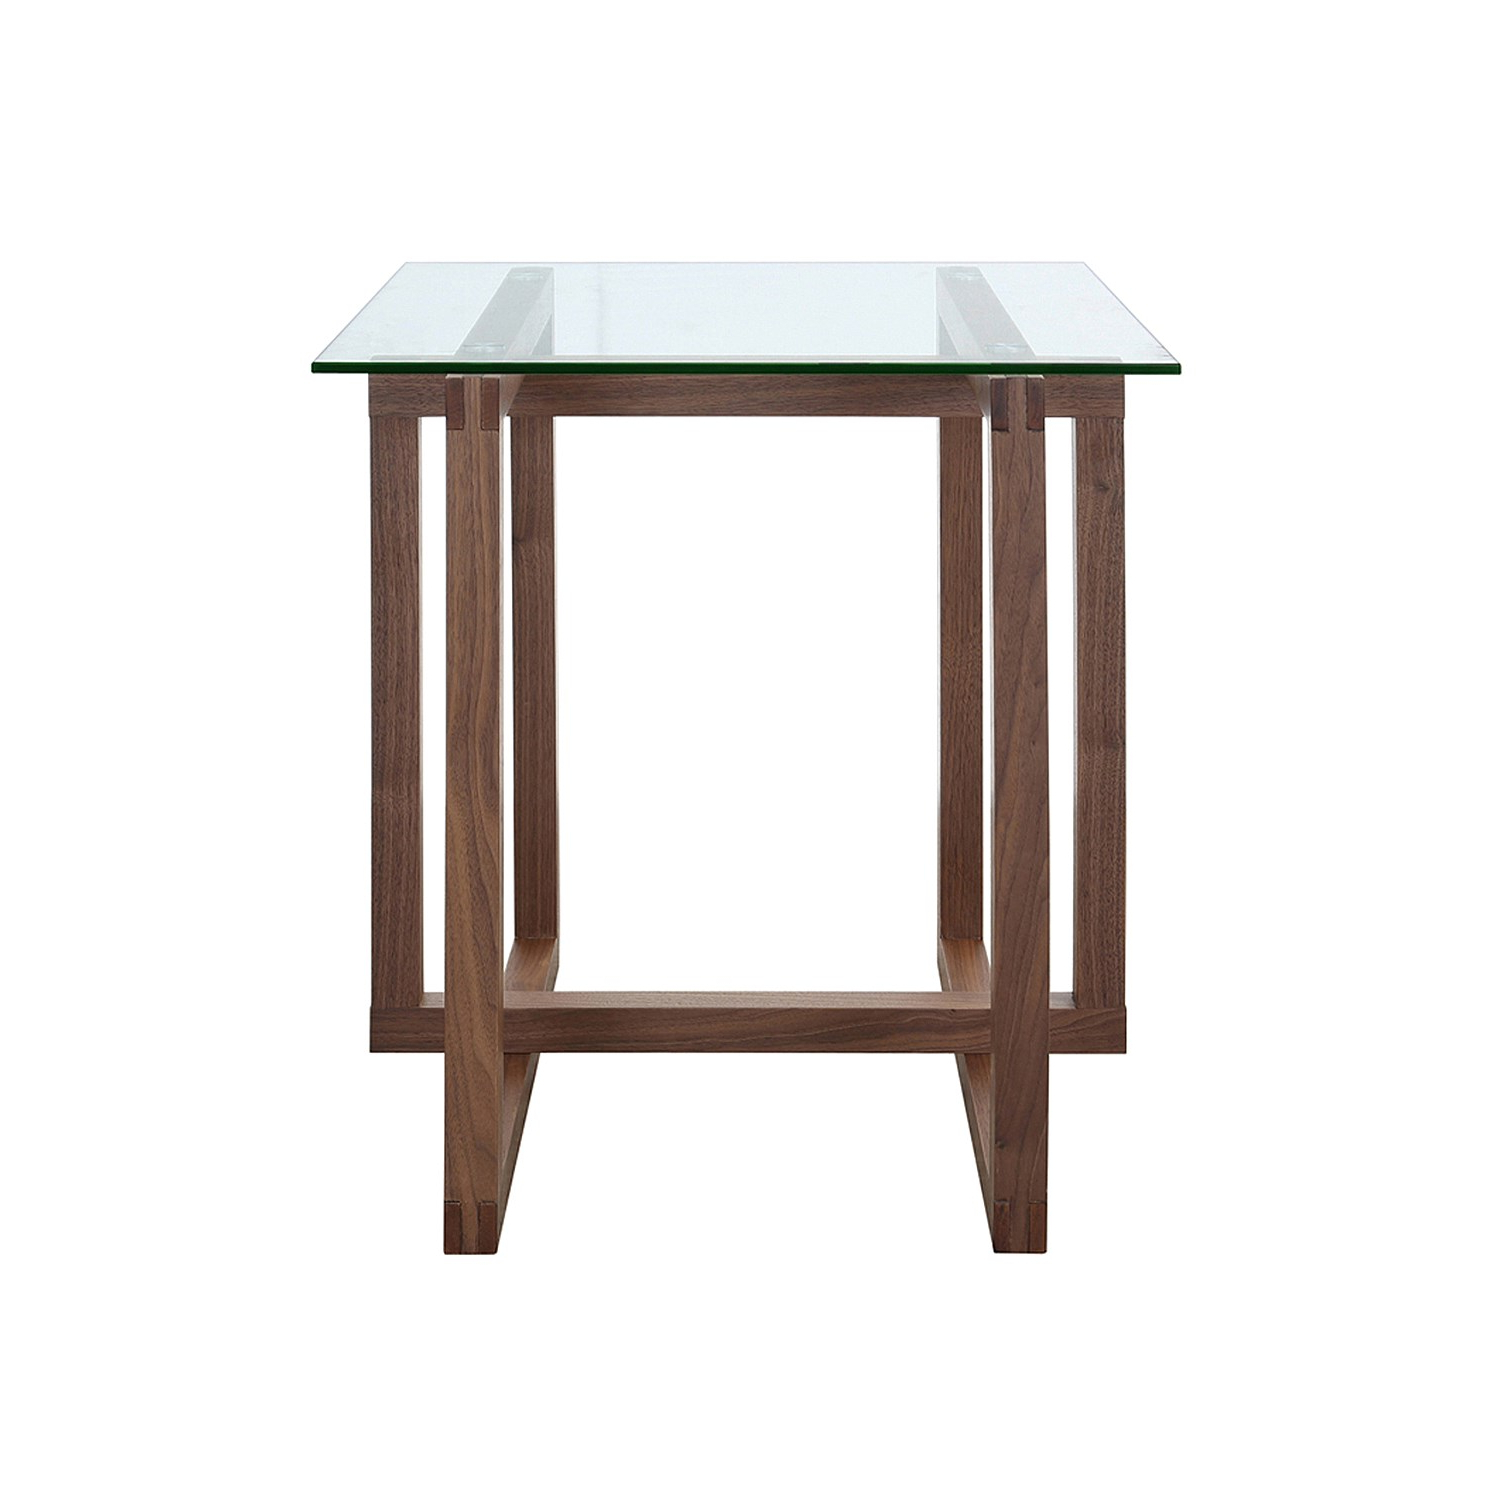 Living Room Furniture,view Range Online Now – Kyra Side Table 55x55cm Throughout Kyra Console Tables (View 8 of 20)